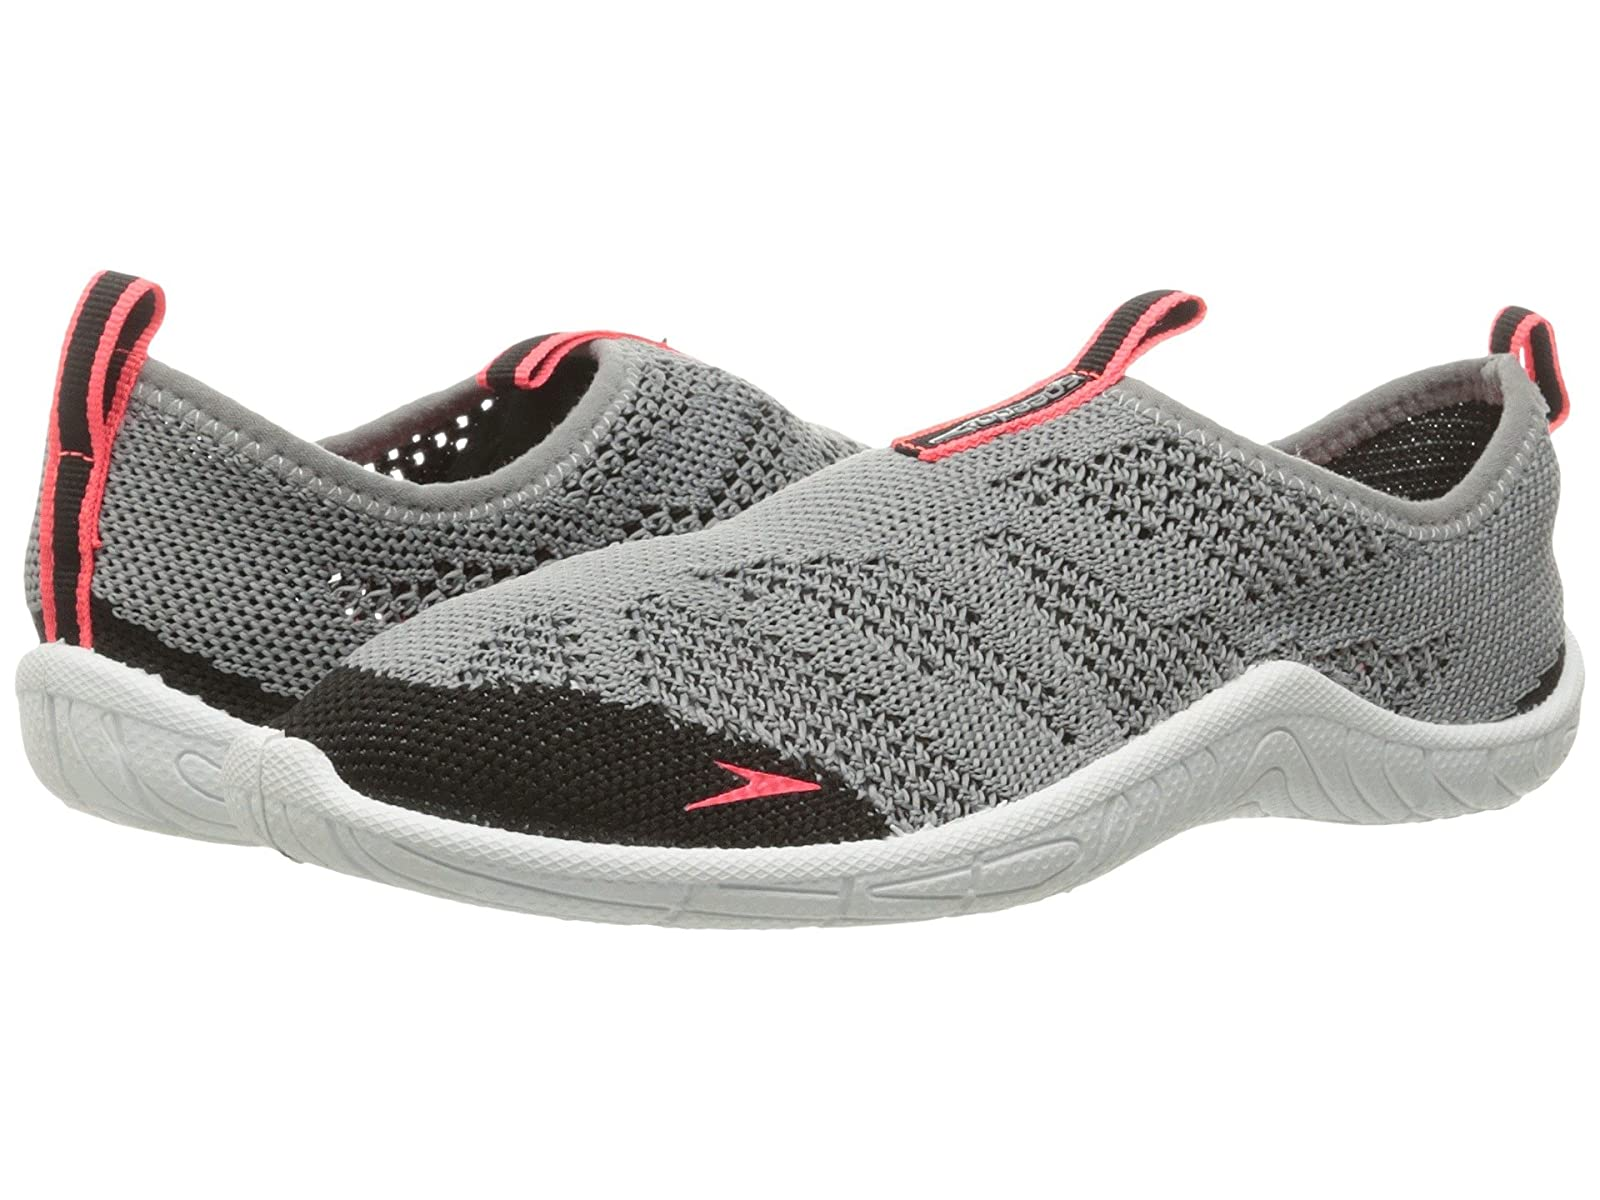 Speedo Surf KnitAtmospheric grades have affordable shoes